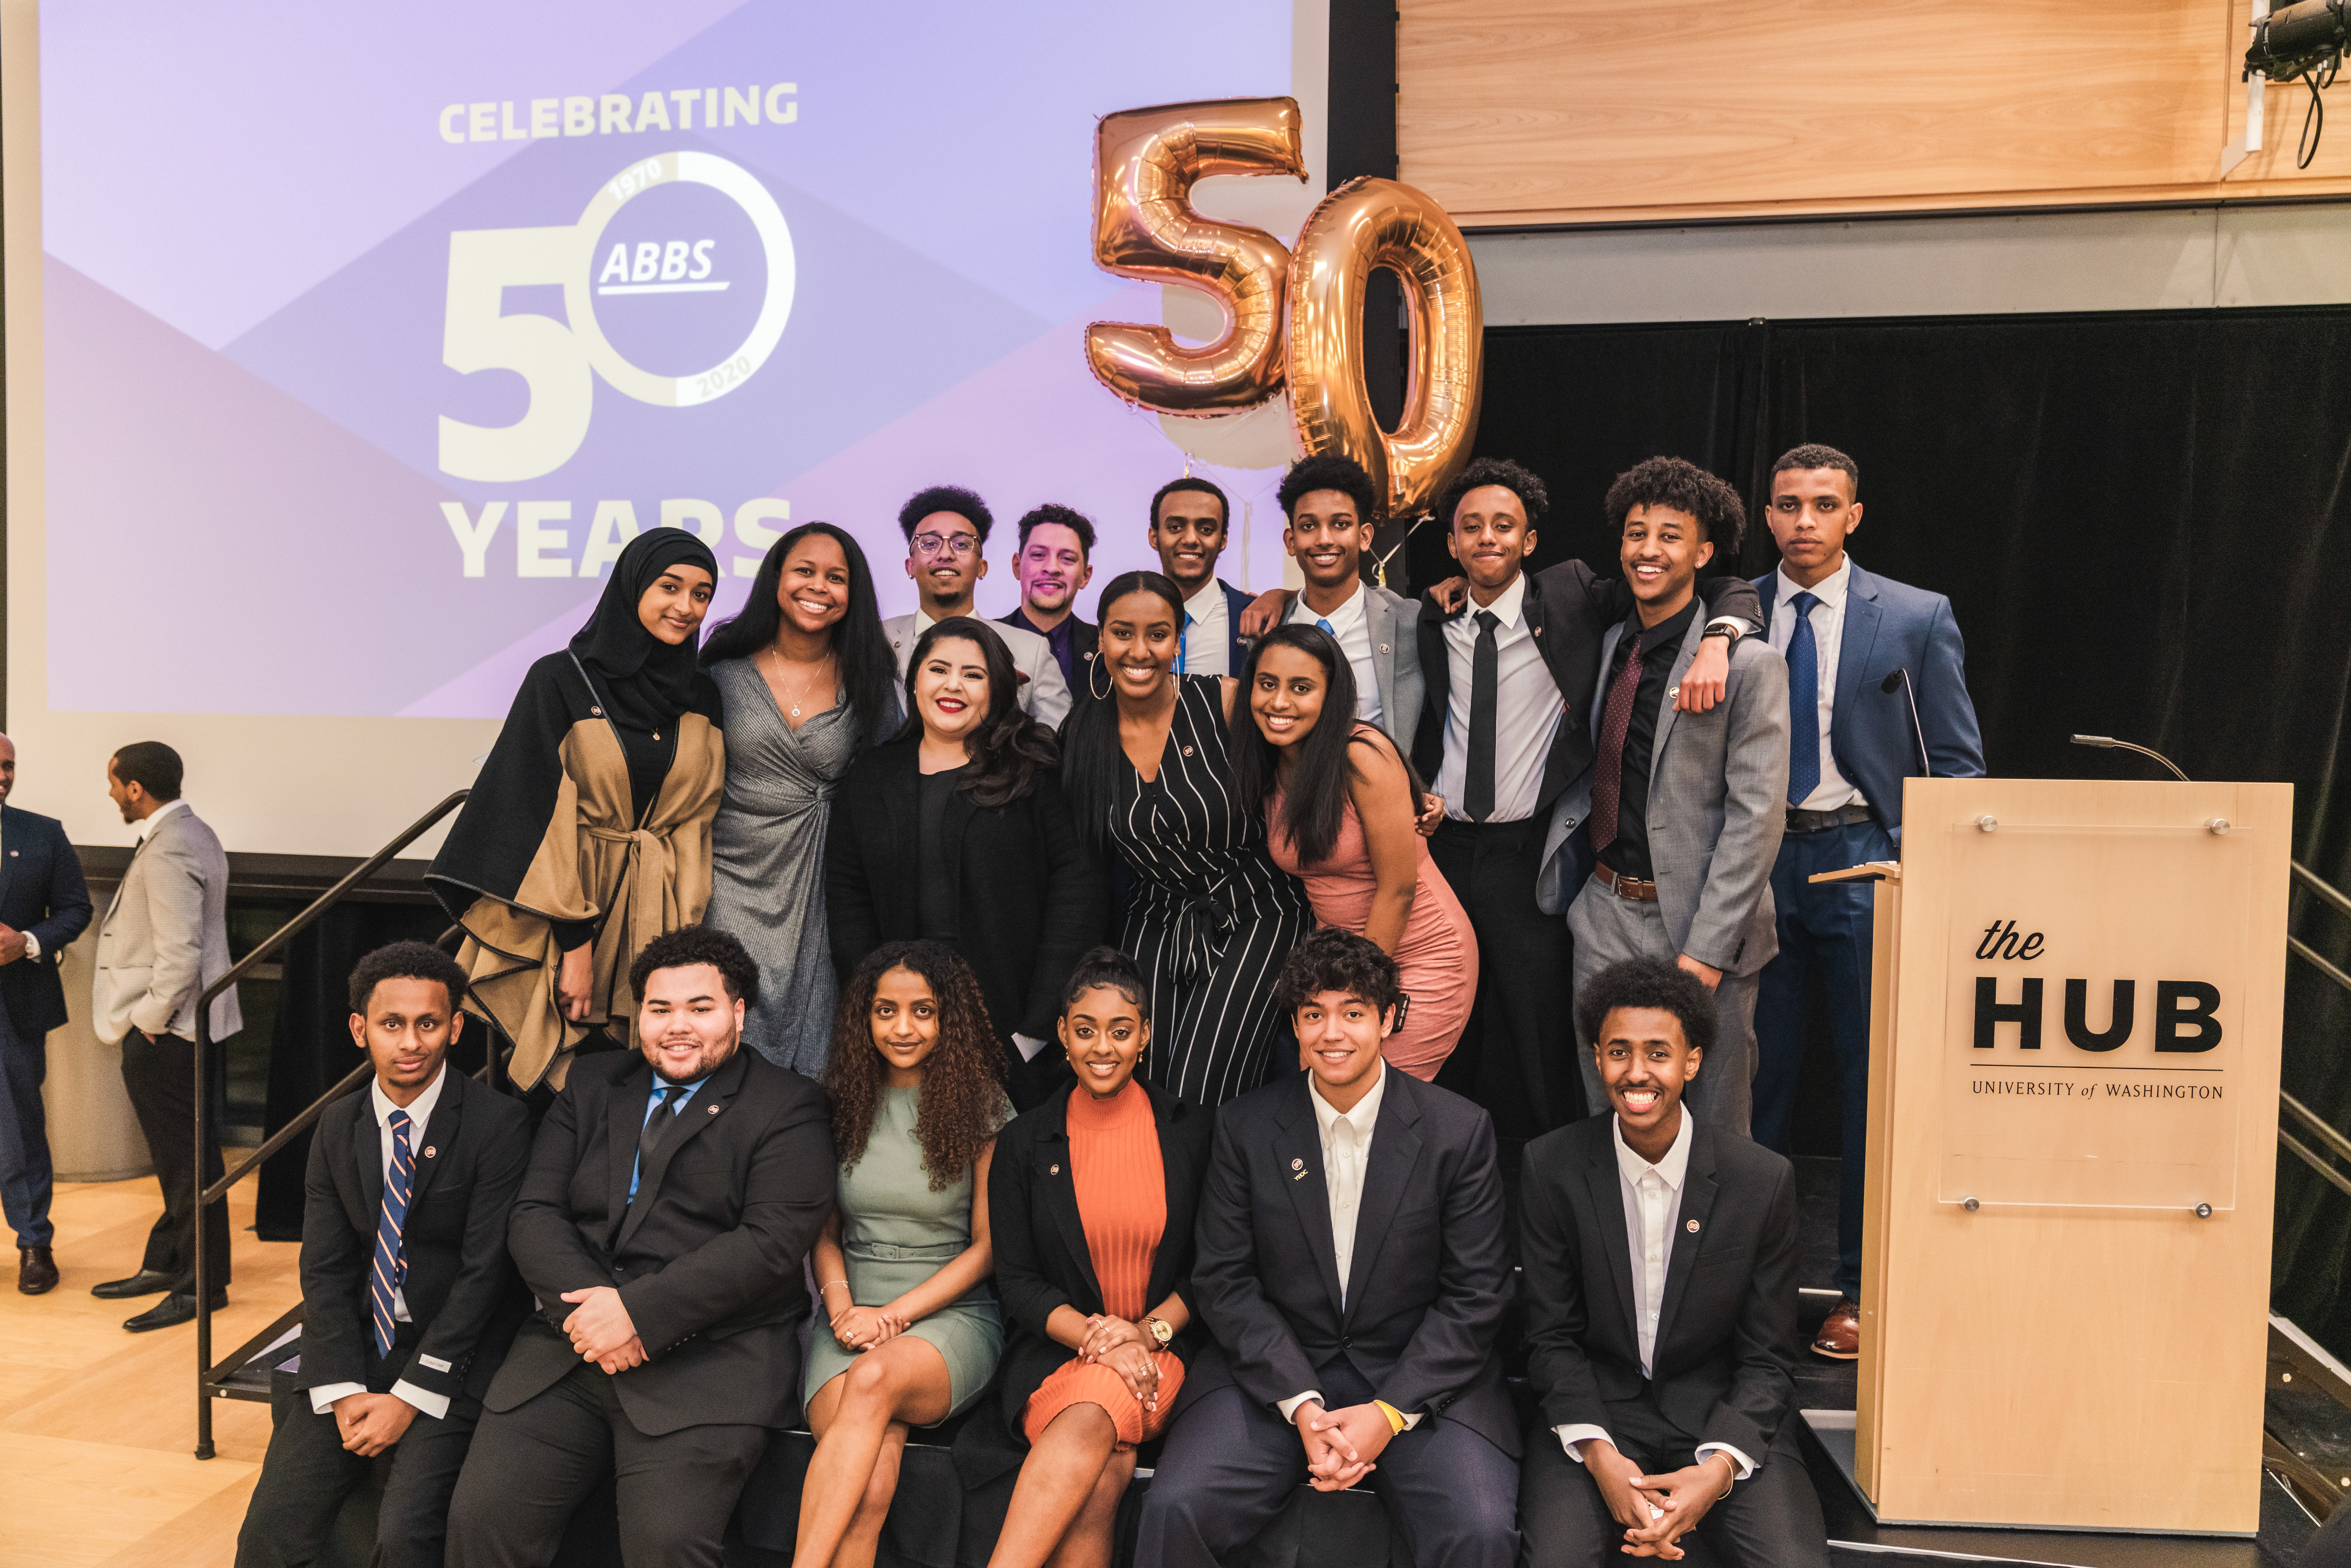 The Association of Black Business Students (ABBS) and National Association of Black Accountants (NABA) 2019-2020 Executive Boards celebrate at the ABBS 50th Anniversary Dinner.